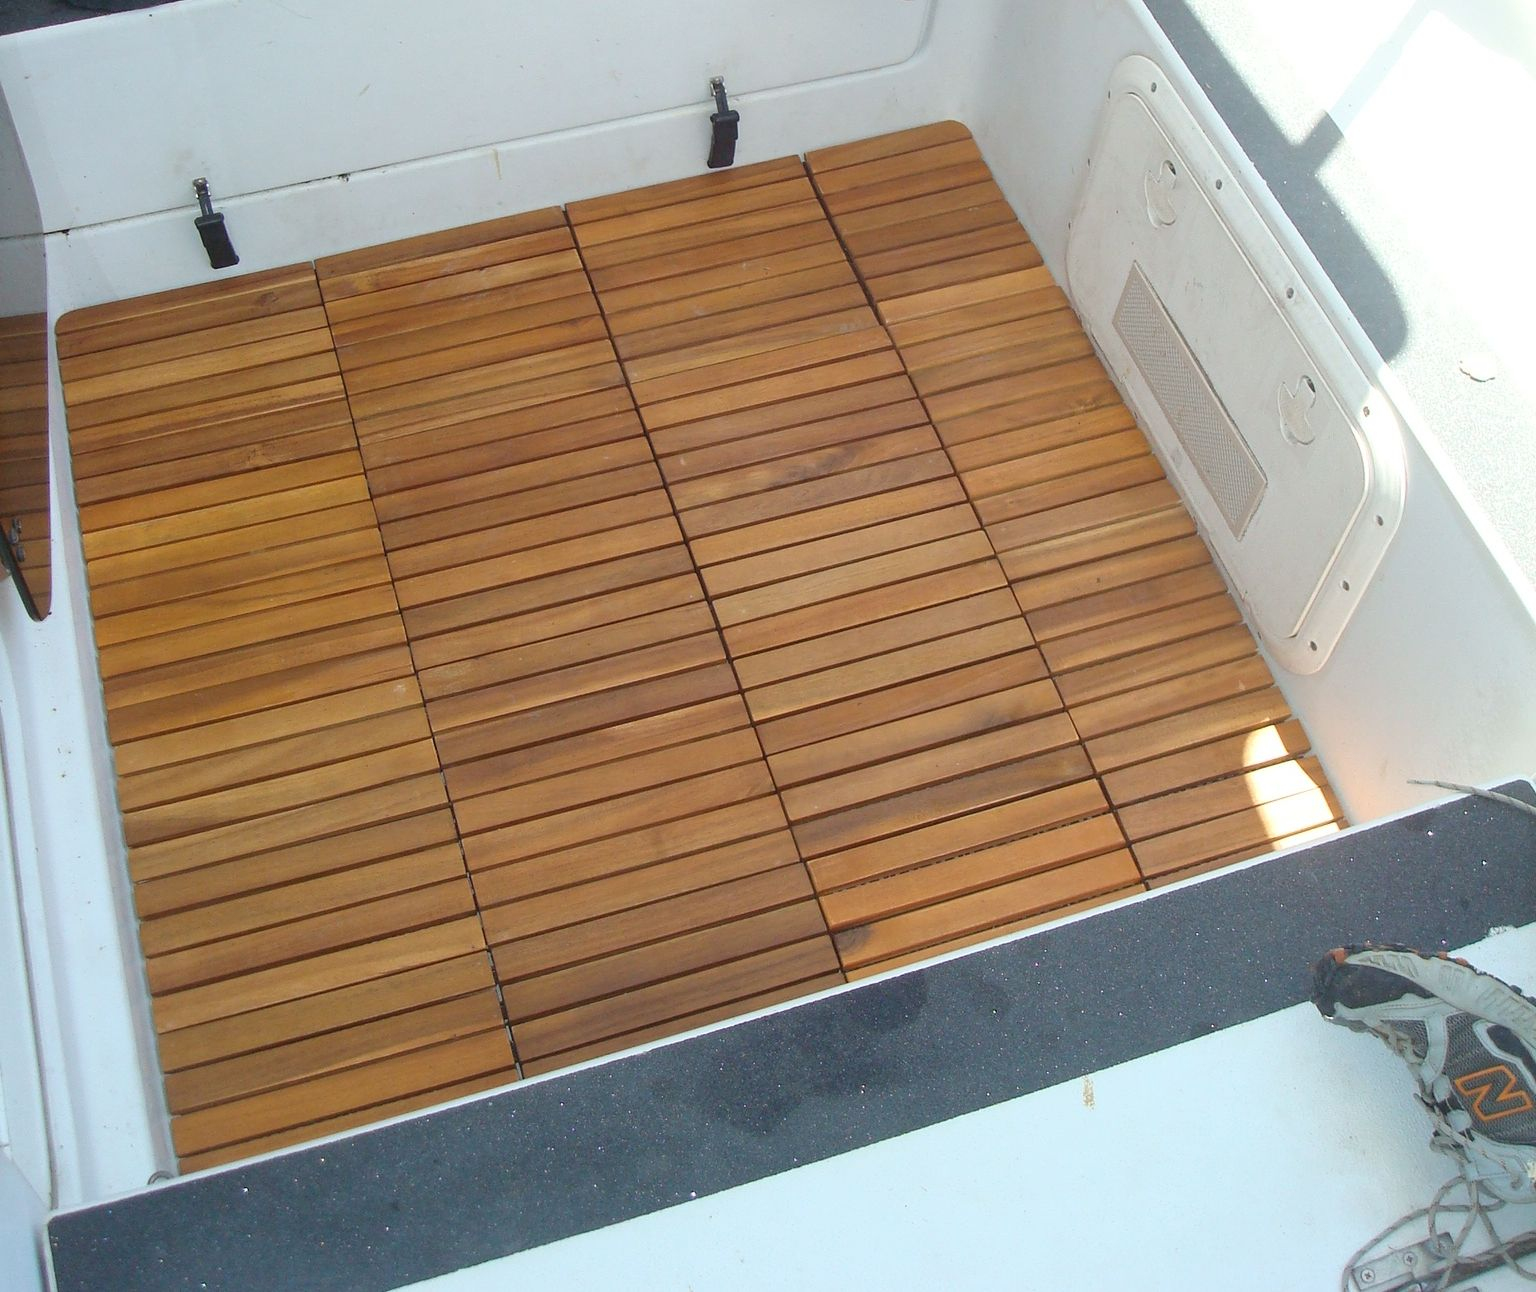 Cockpit Floor With Square Tiles From Ikea Boat Interior Liveaboard Boats Practical Sailor